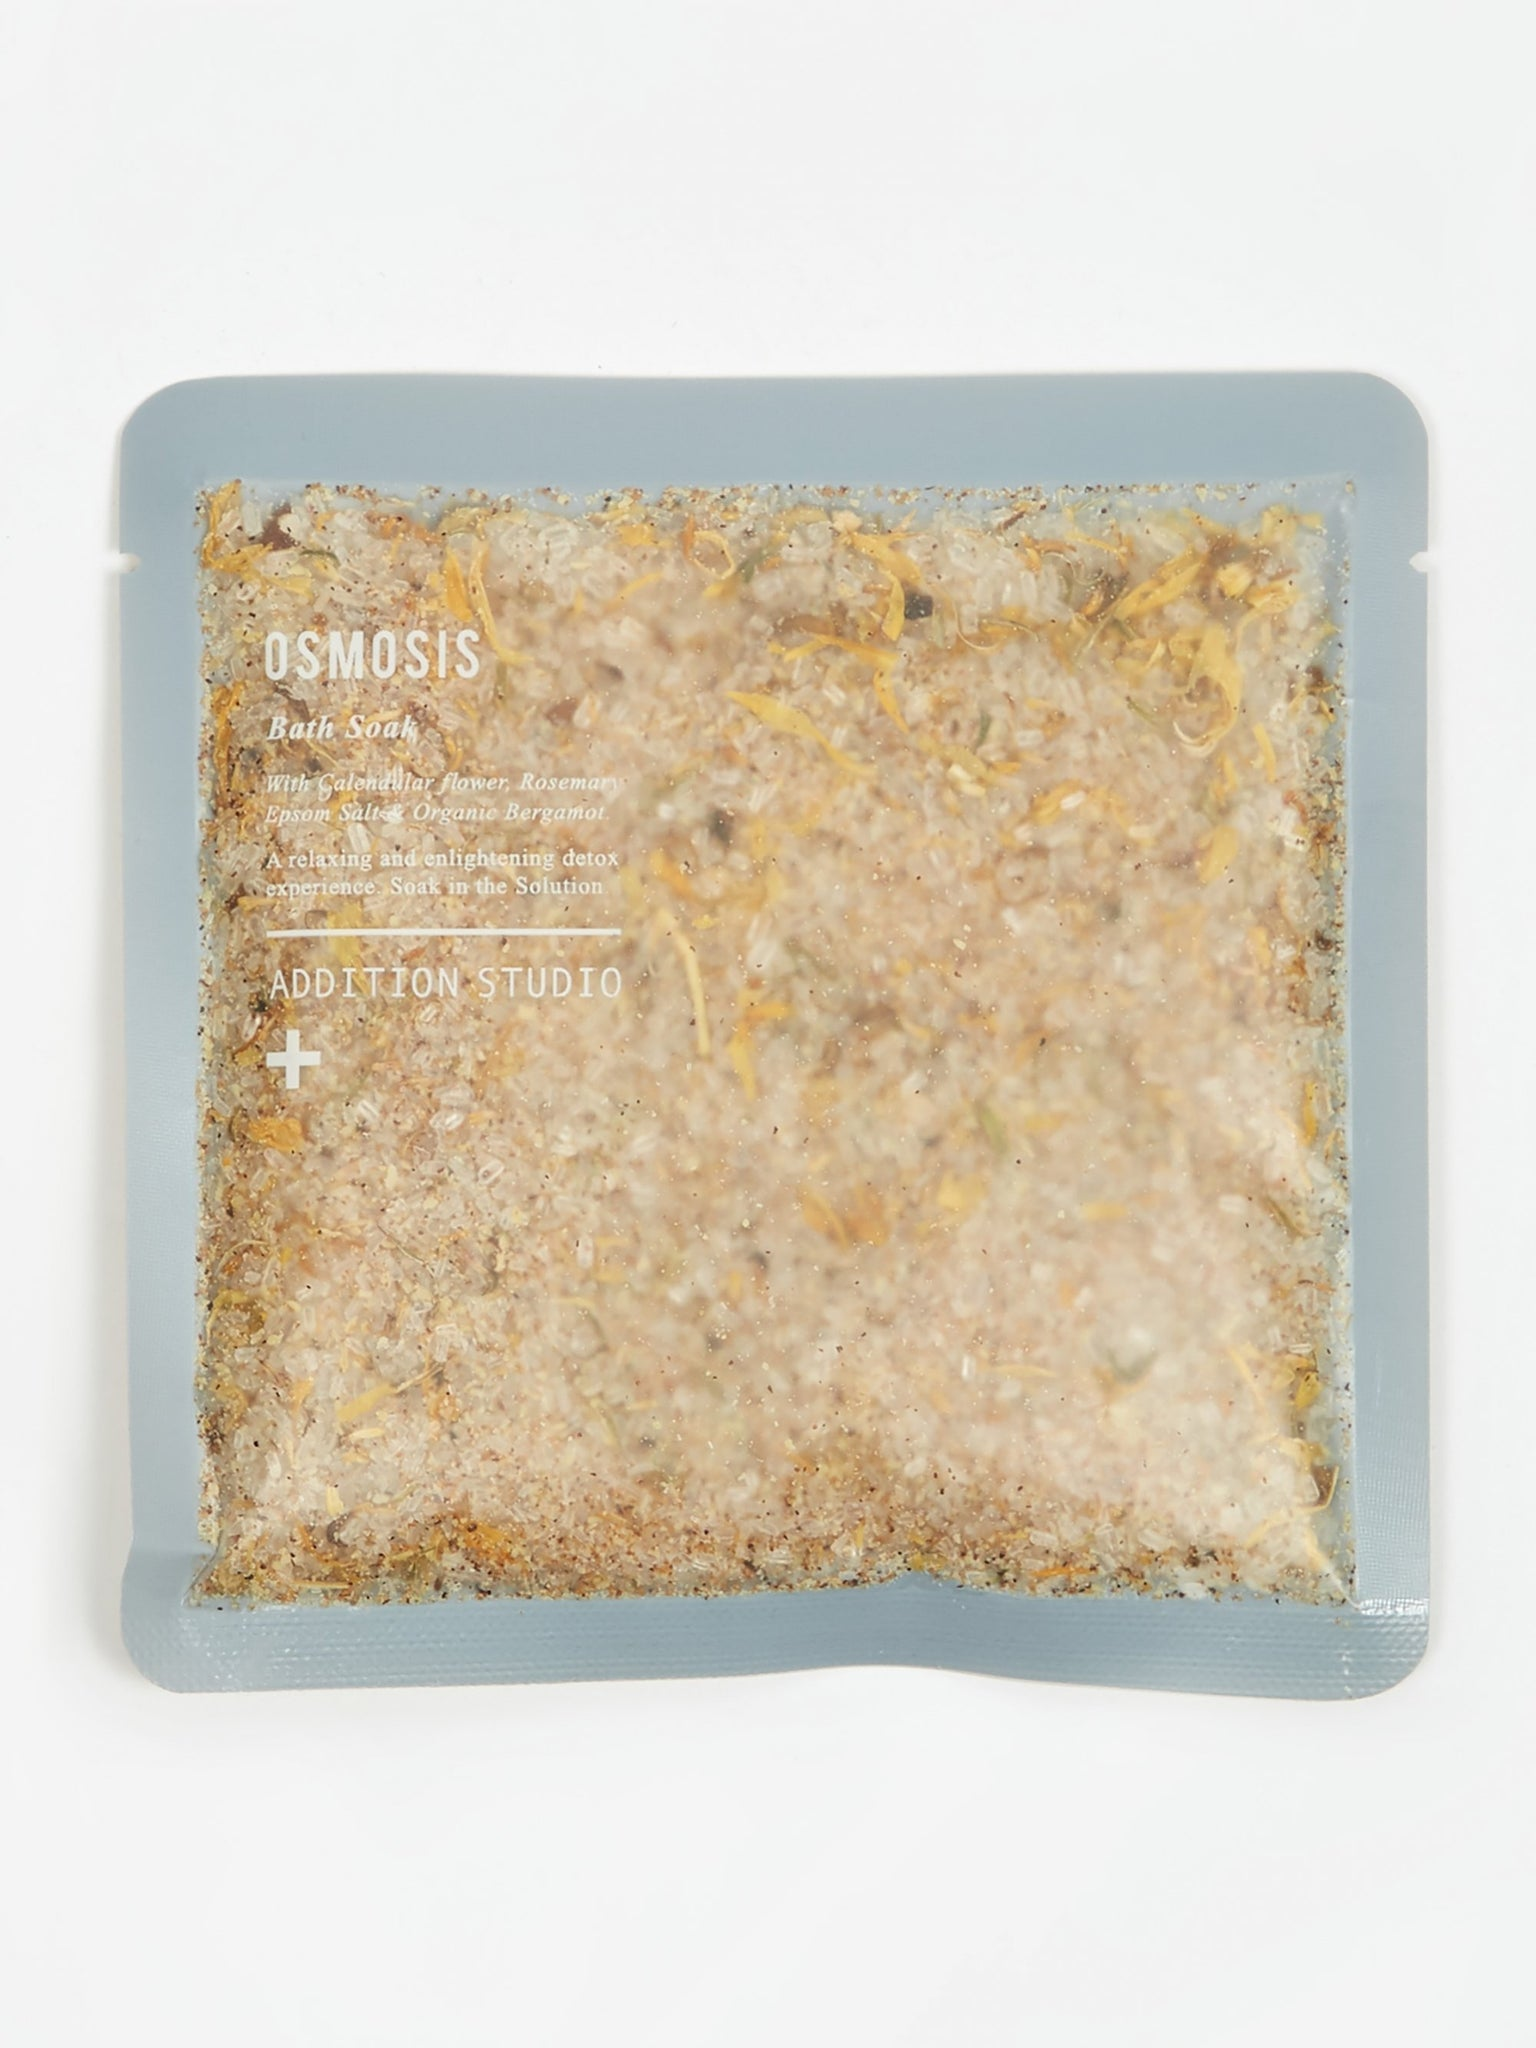 Addition Studio Osmosis Bath Soak Sachet